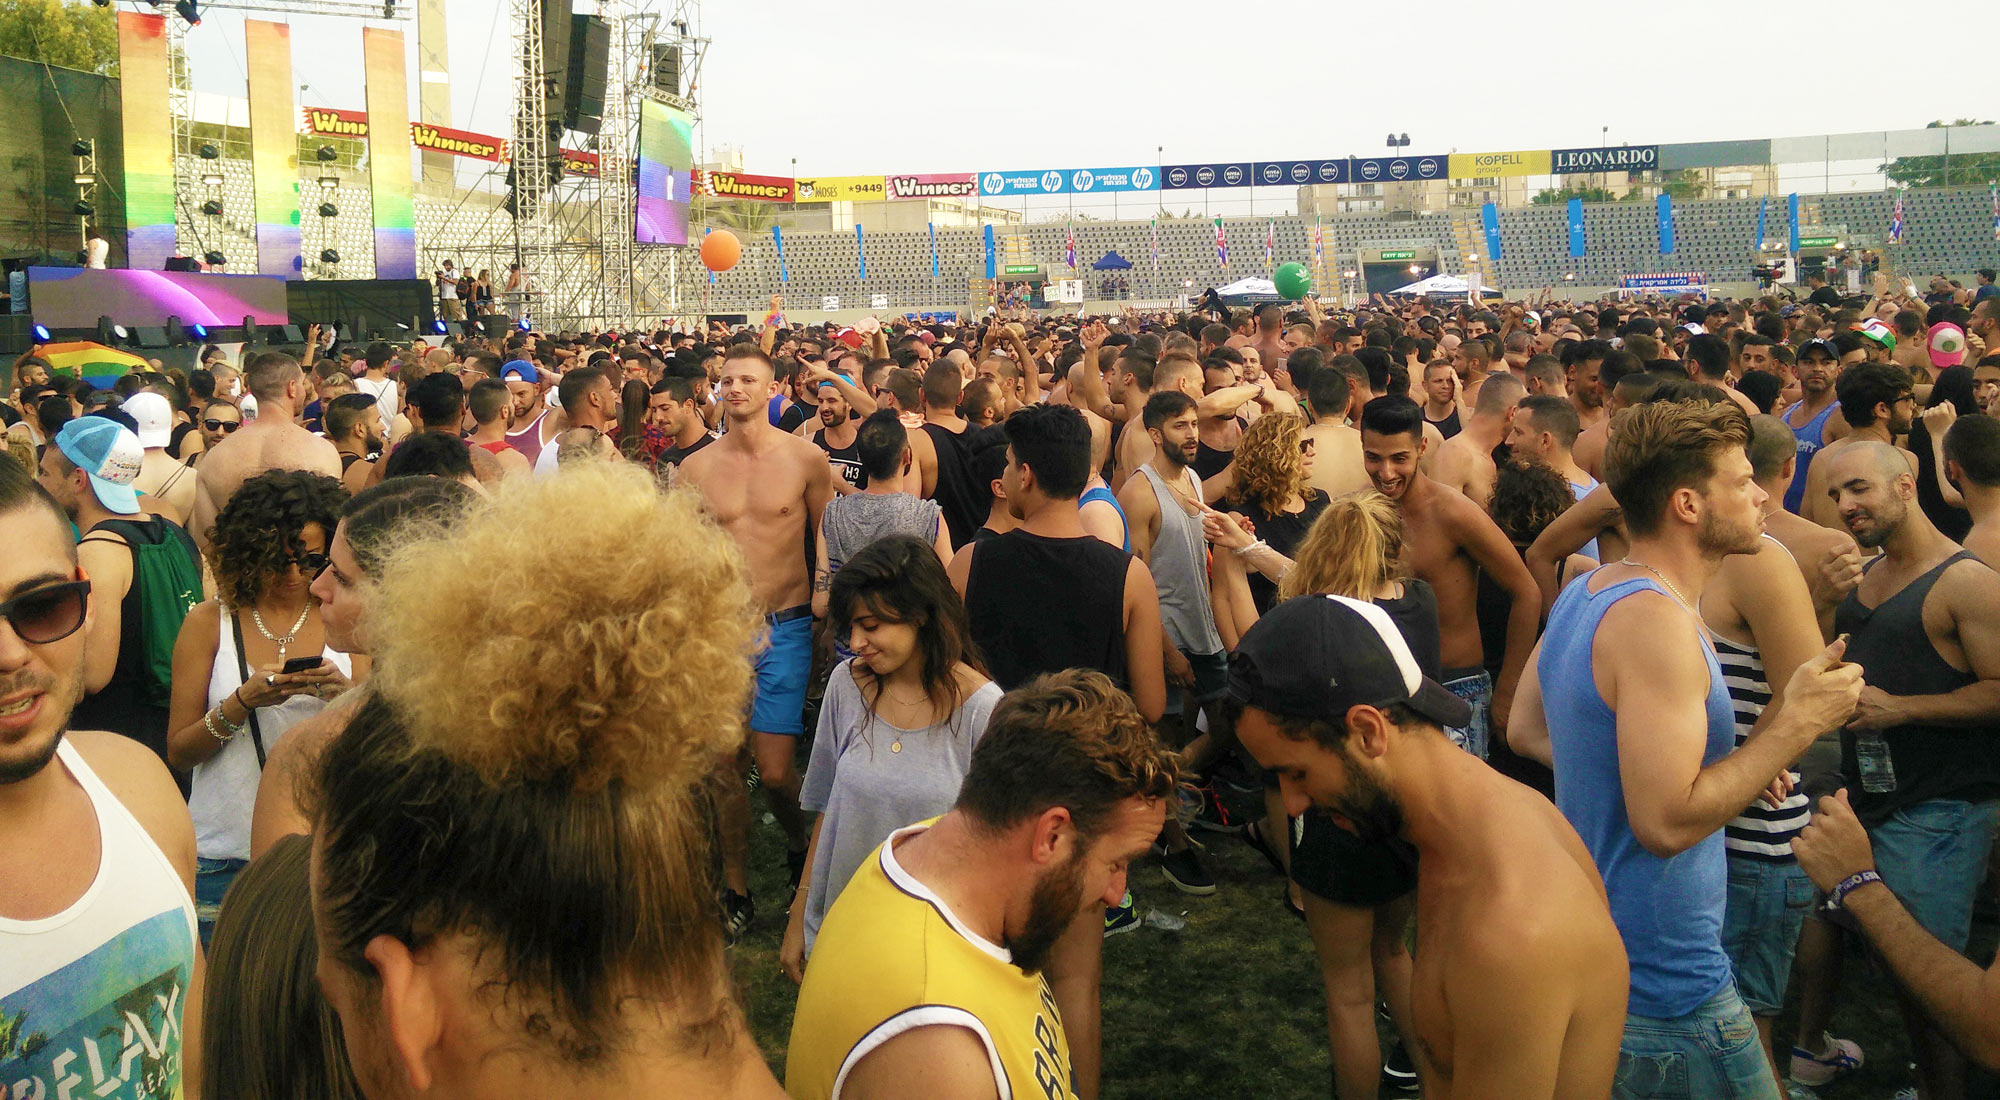 dancing people and stage show of the open-air disco with DJ Offer Nissim at Bloomfield Stadium for Tel Aviv Pride 2016